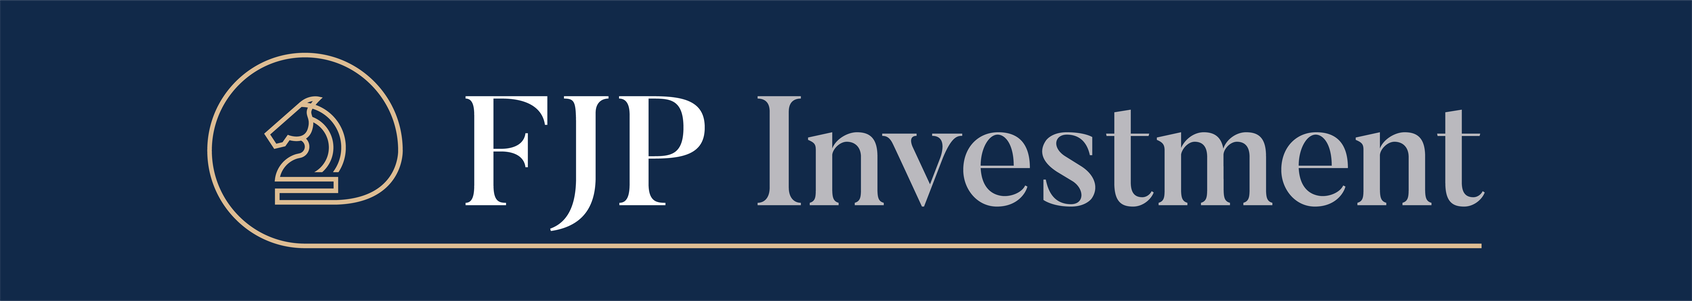 FJP Investment Ltd Logo